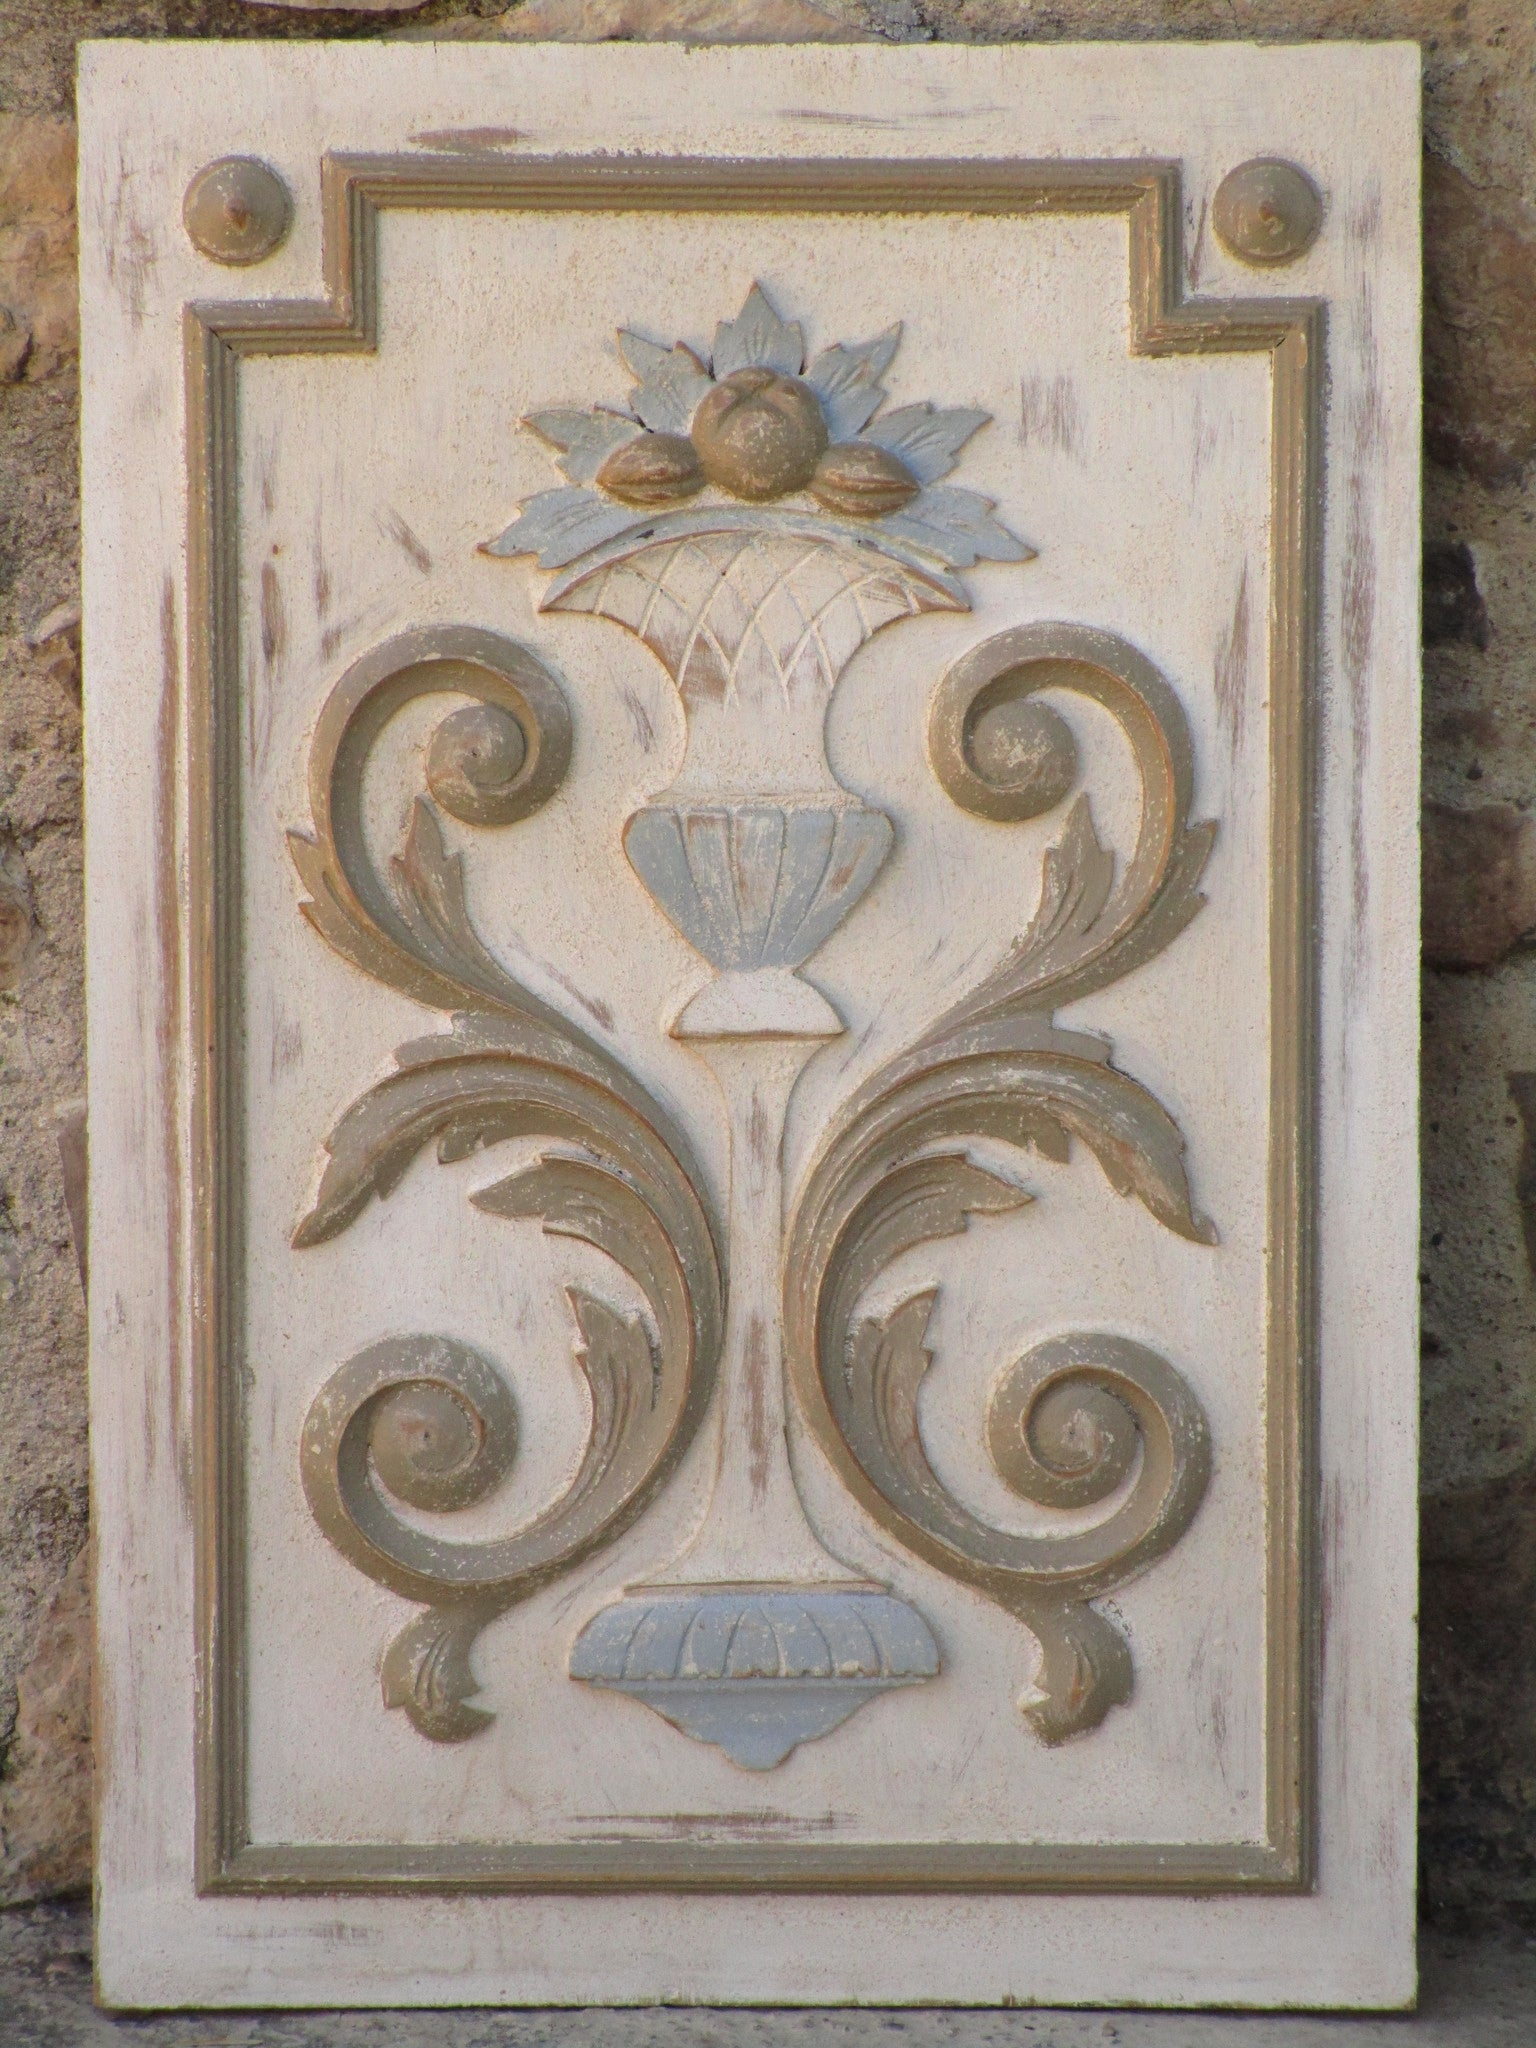 Neutral French decorative panel with floral motifs - farmhouse decor